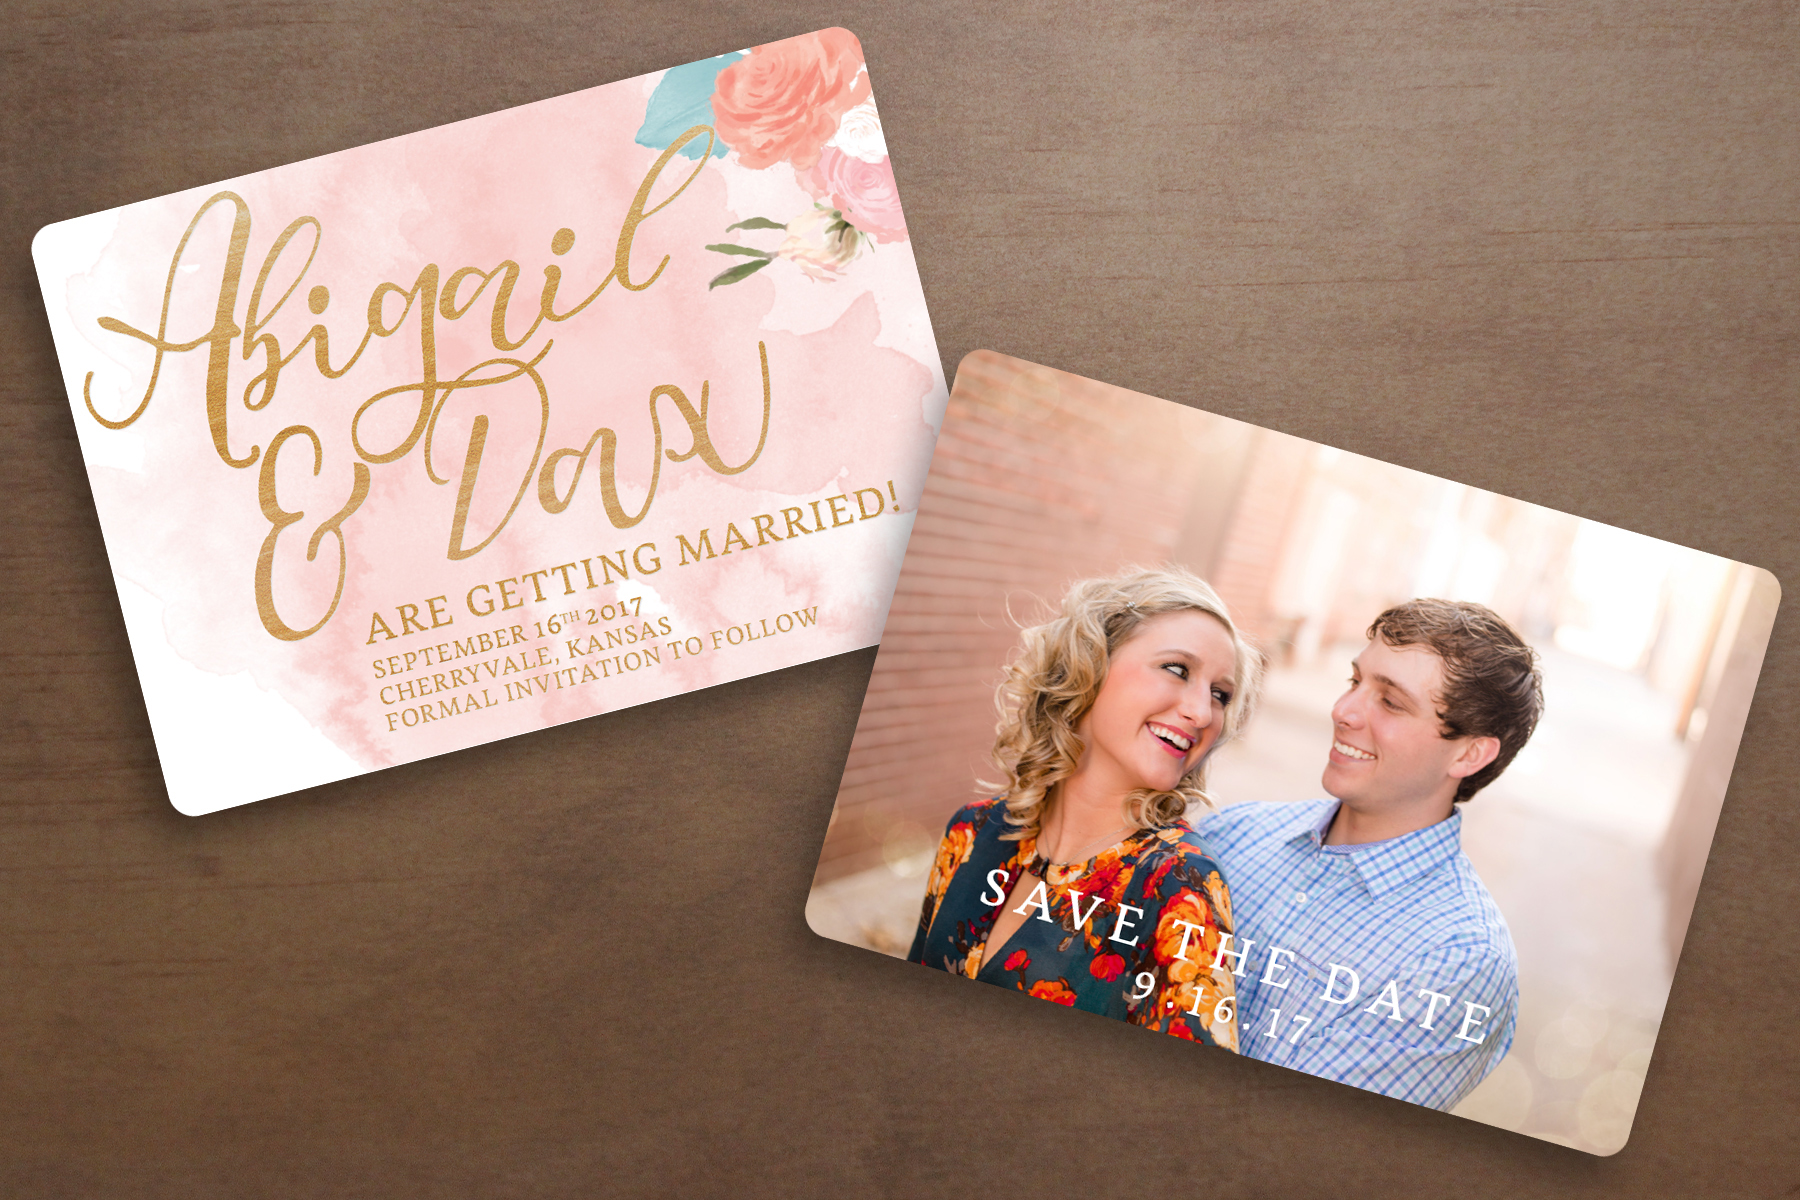 This is a mockup of Abigail and Dax's custom Save-the-Date I designed for them!